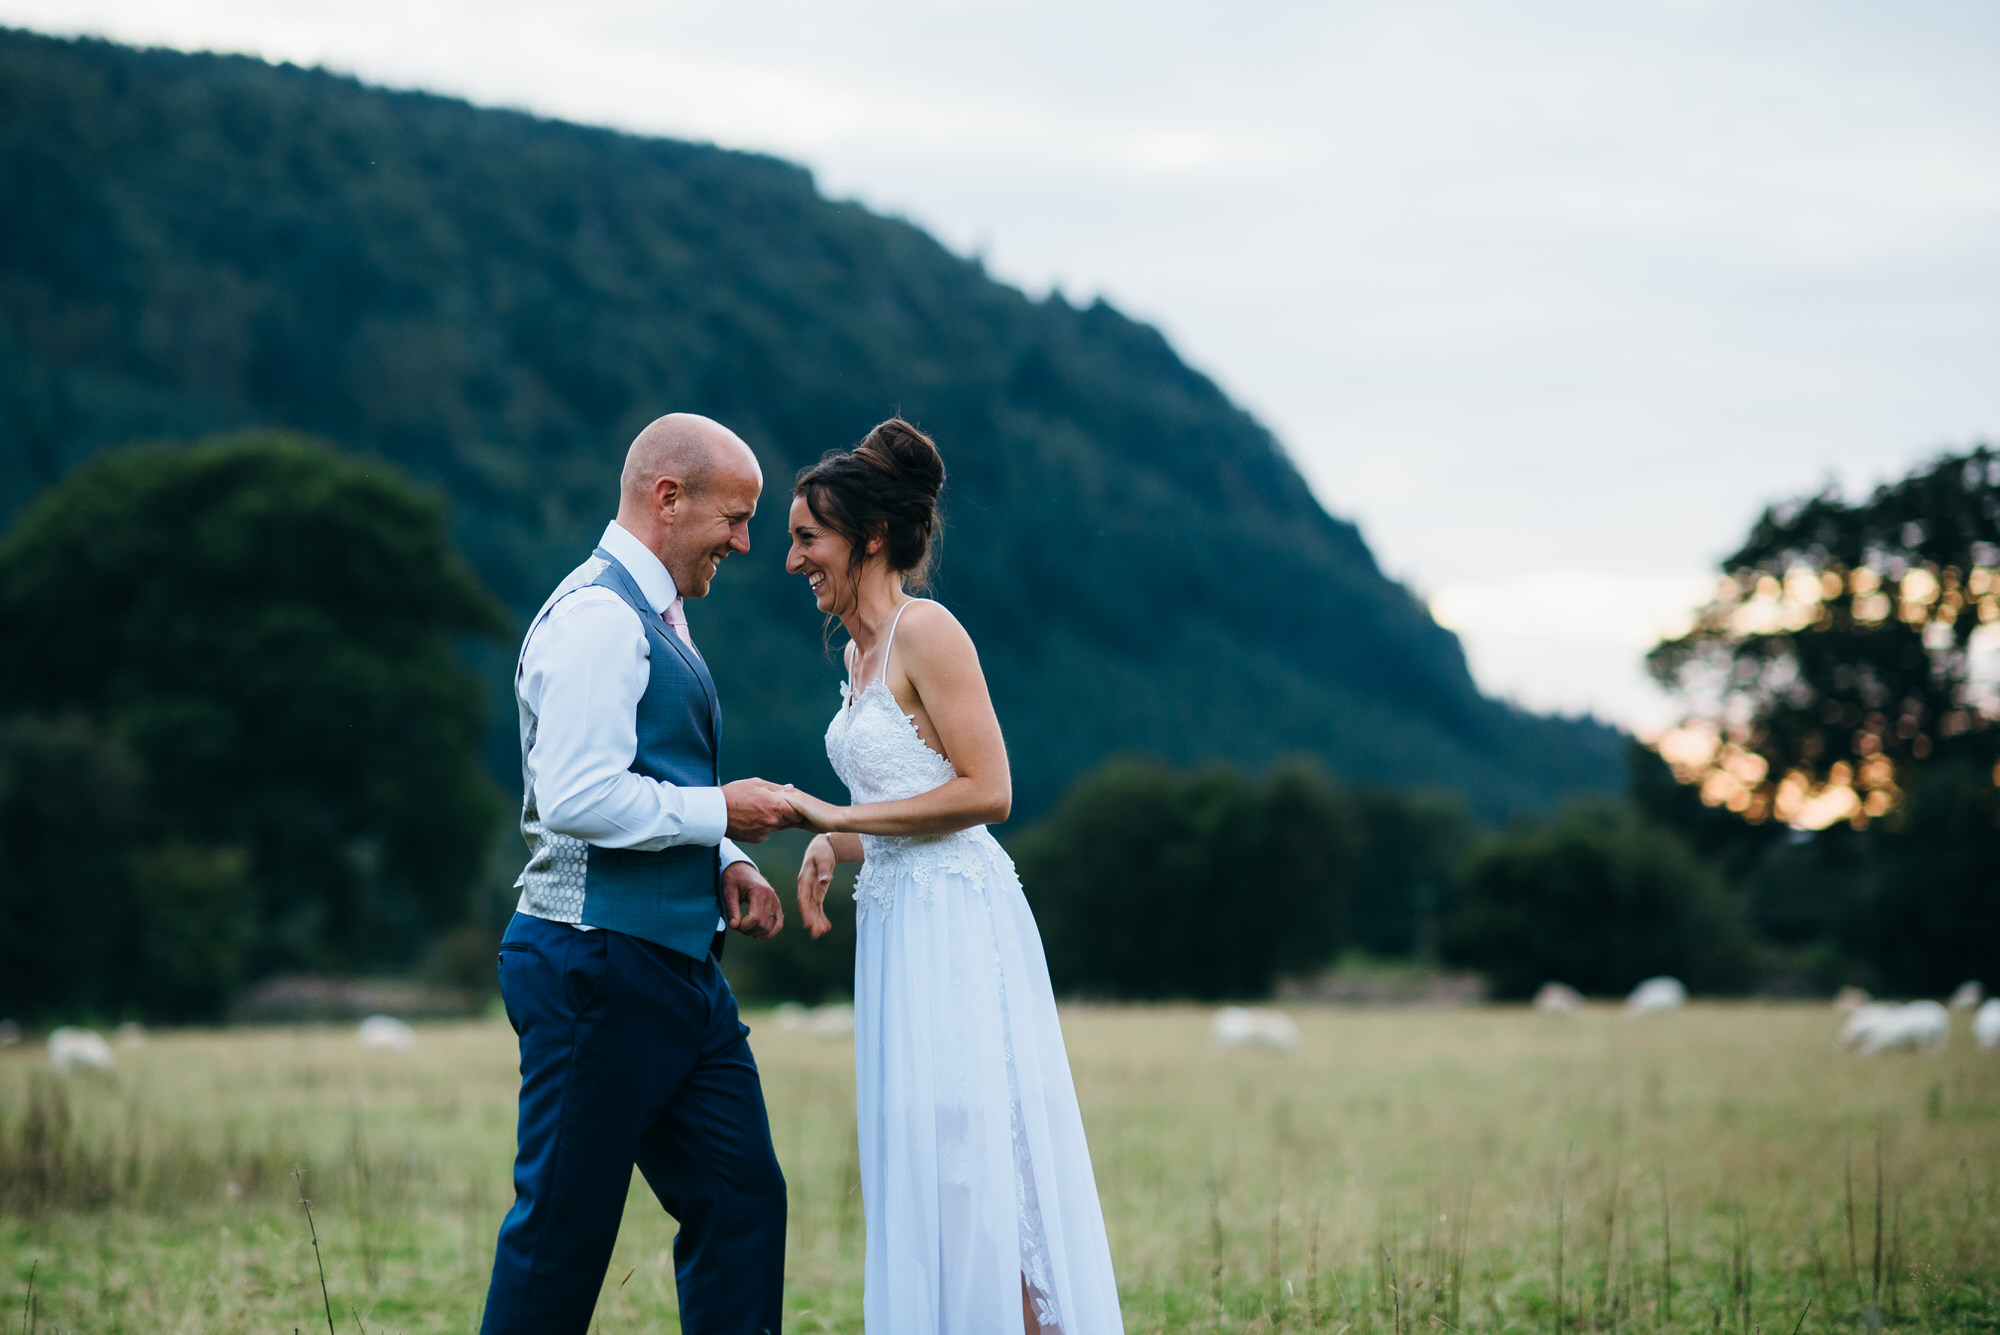 Hafod farm wedding photography077